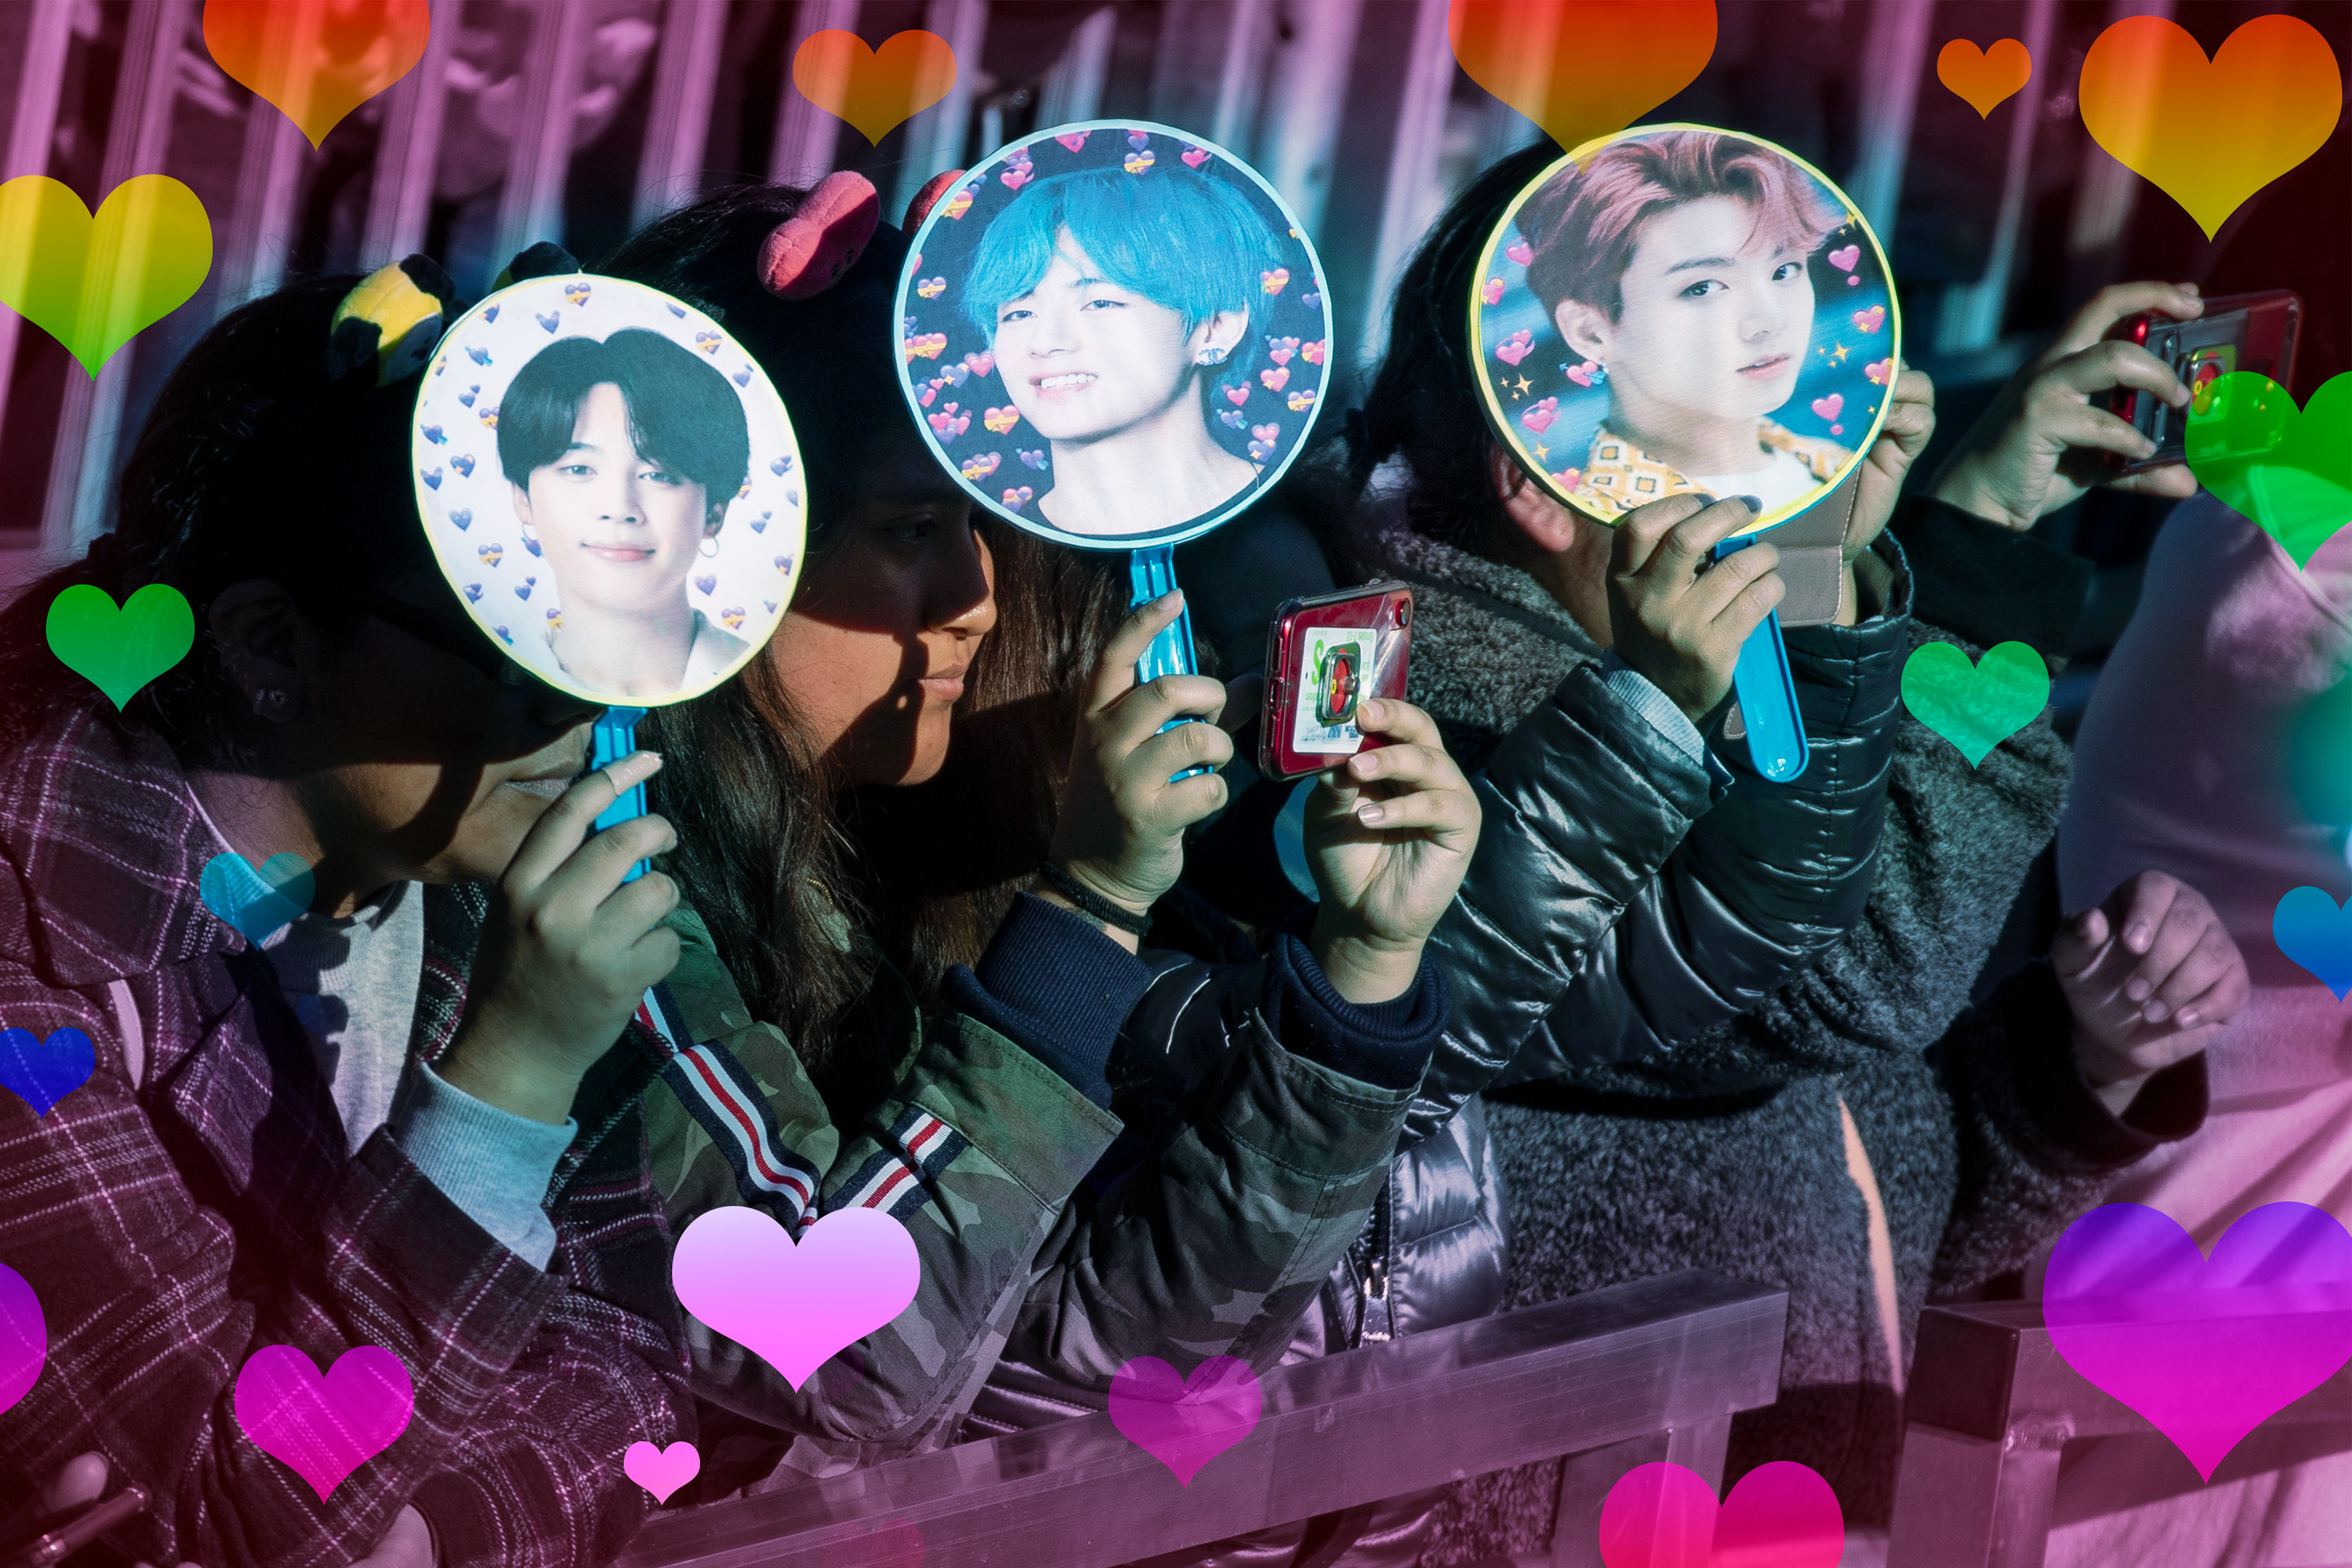 How K-pop fans became celebrated online vigilantes | MIT Technology Review